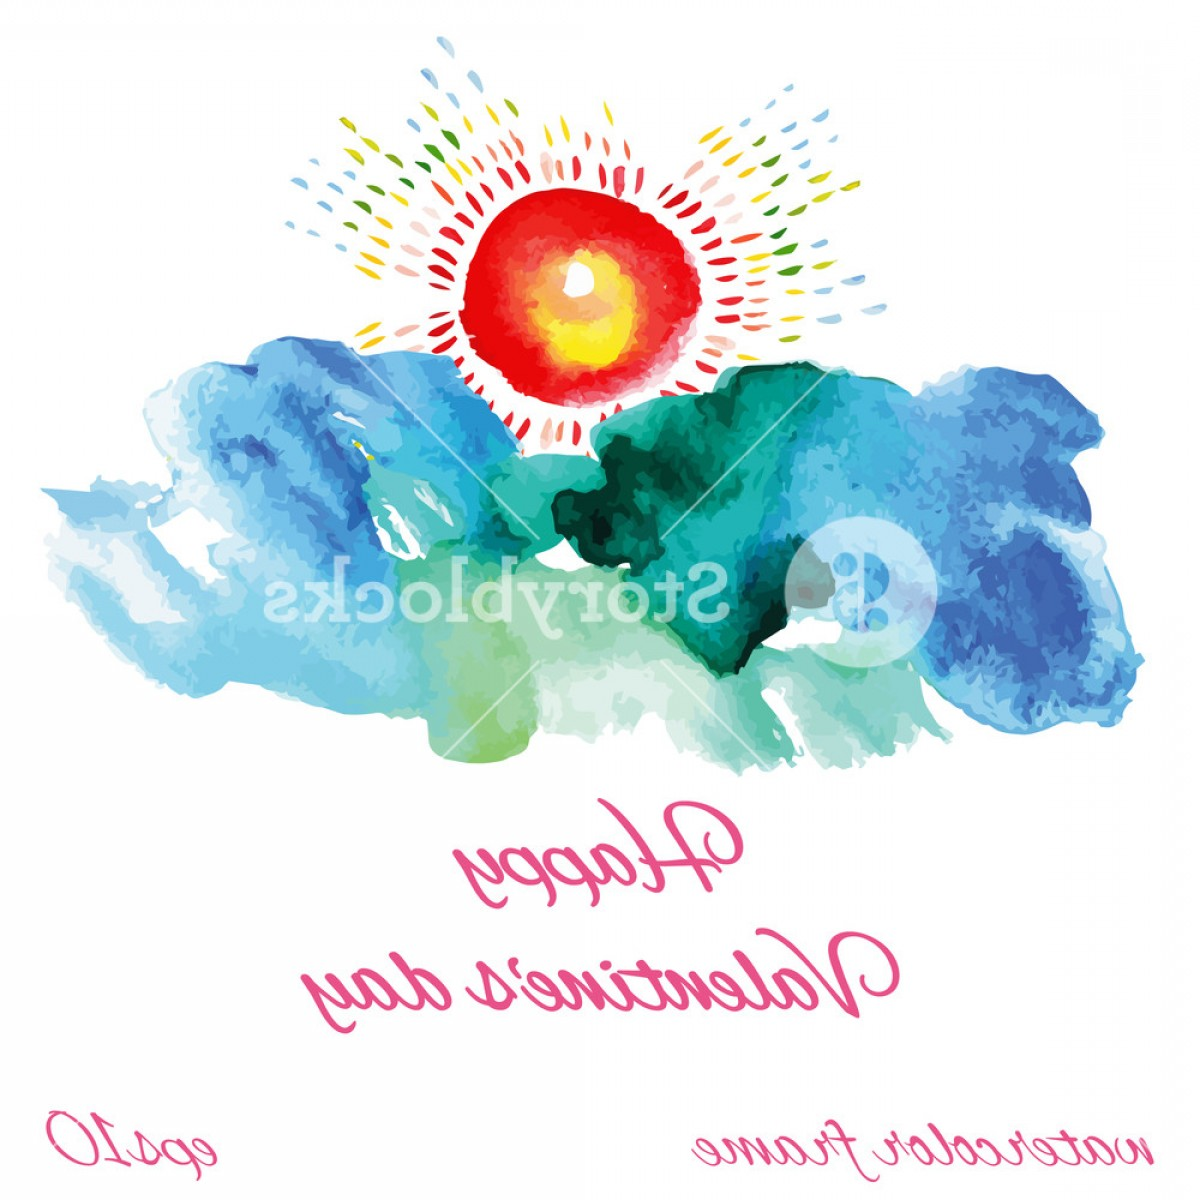 Watercolor Vector Free Designs: Colorful Sun And Clouds Watercolor Vector Illustration Hfayez Zjextmu